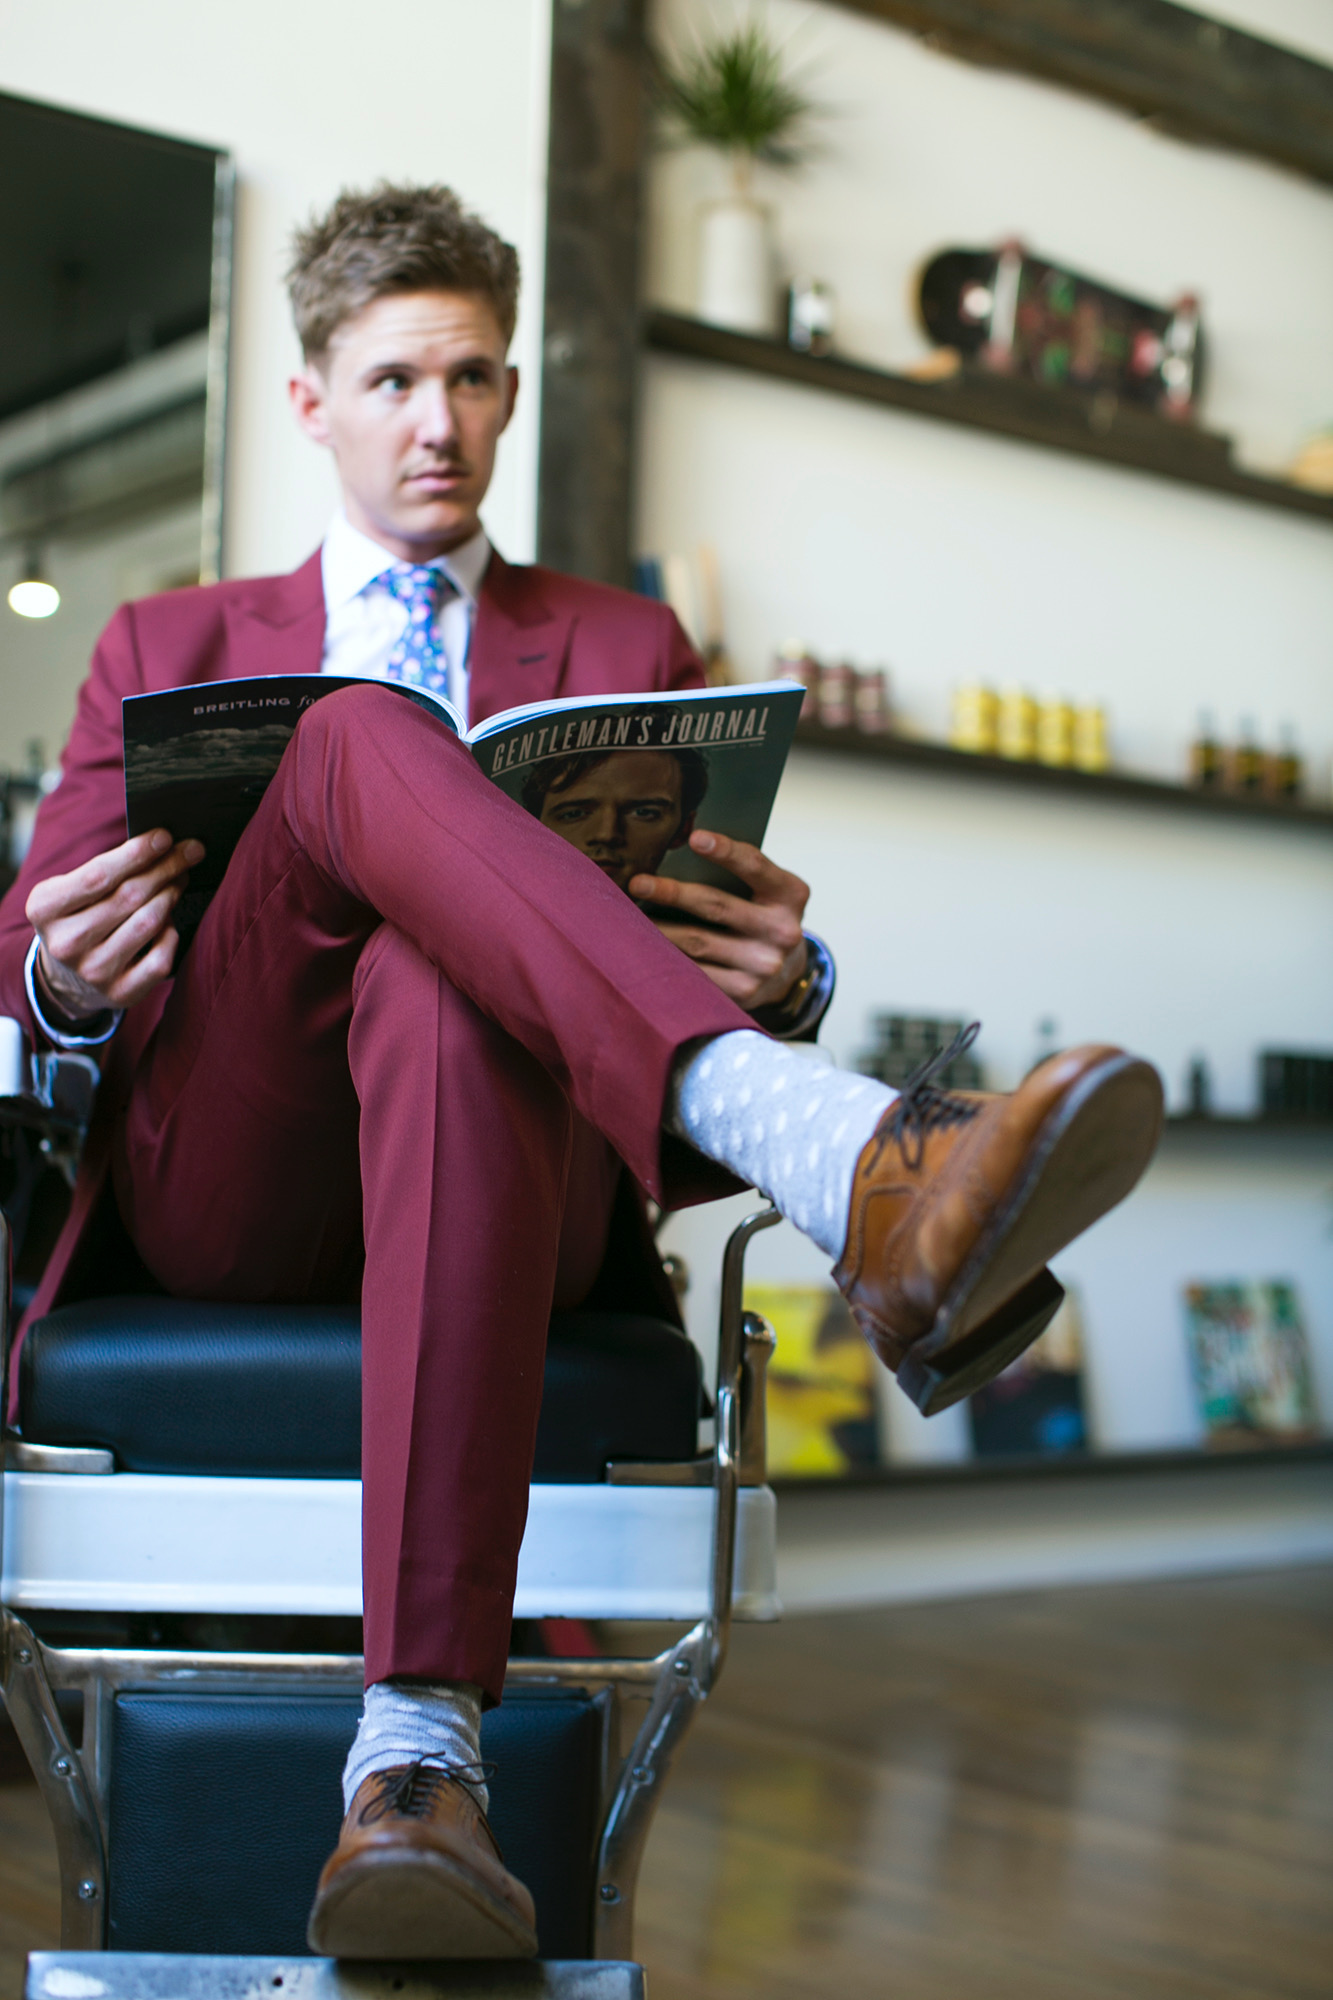 Draper Barber Co - Cole Kelson, founder of Draper Barber Co, Draper, a venue that offers the Modern Gent a chance to create their own brand states the